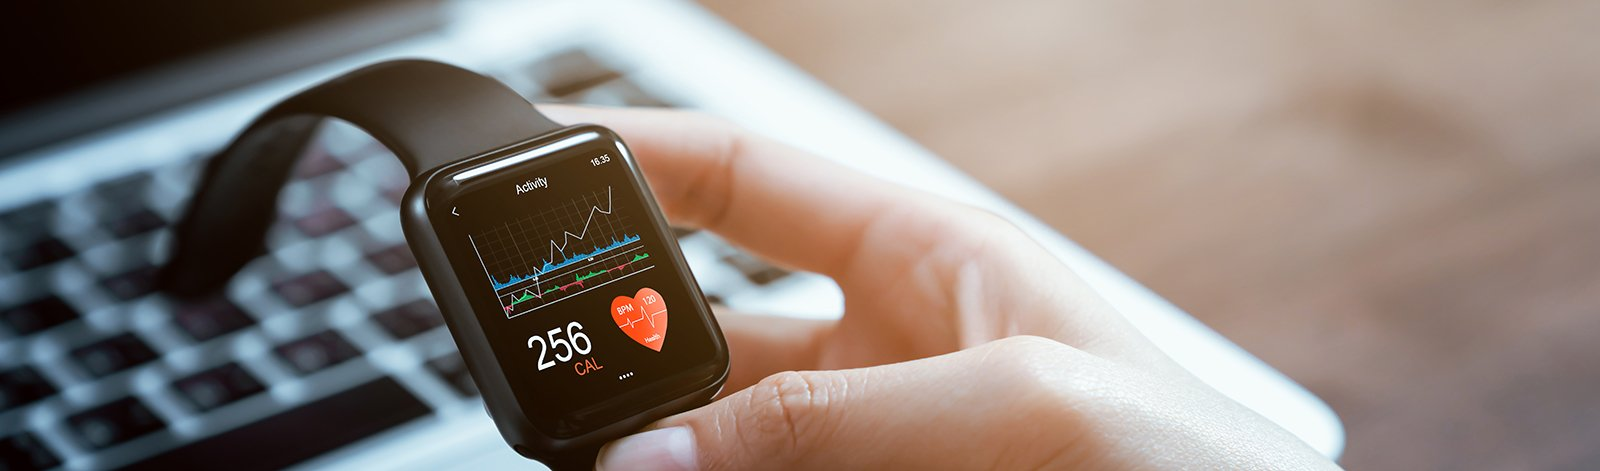 Close up of hand touching smartwatch with health app on the screen